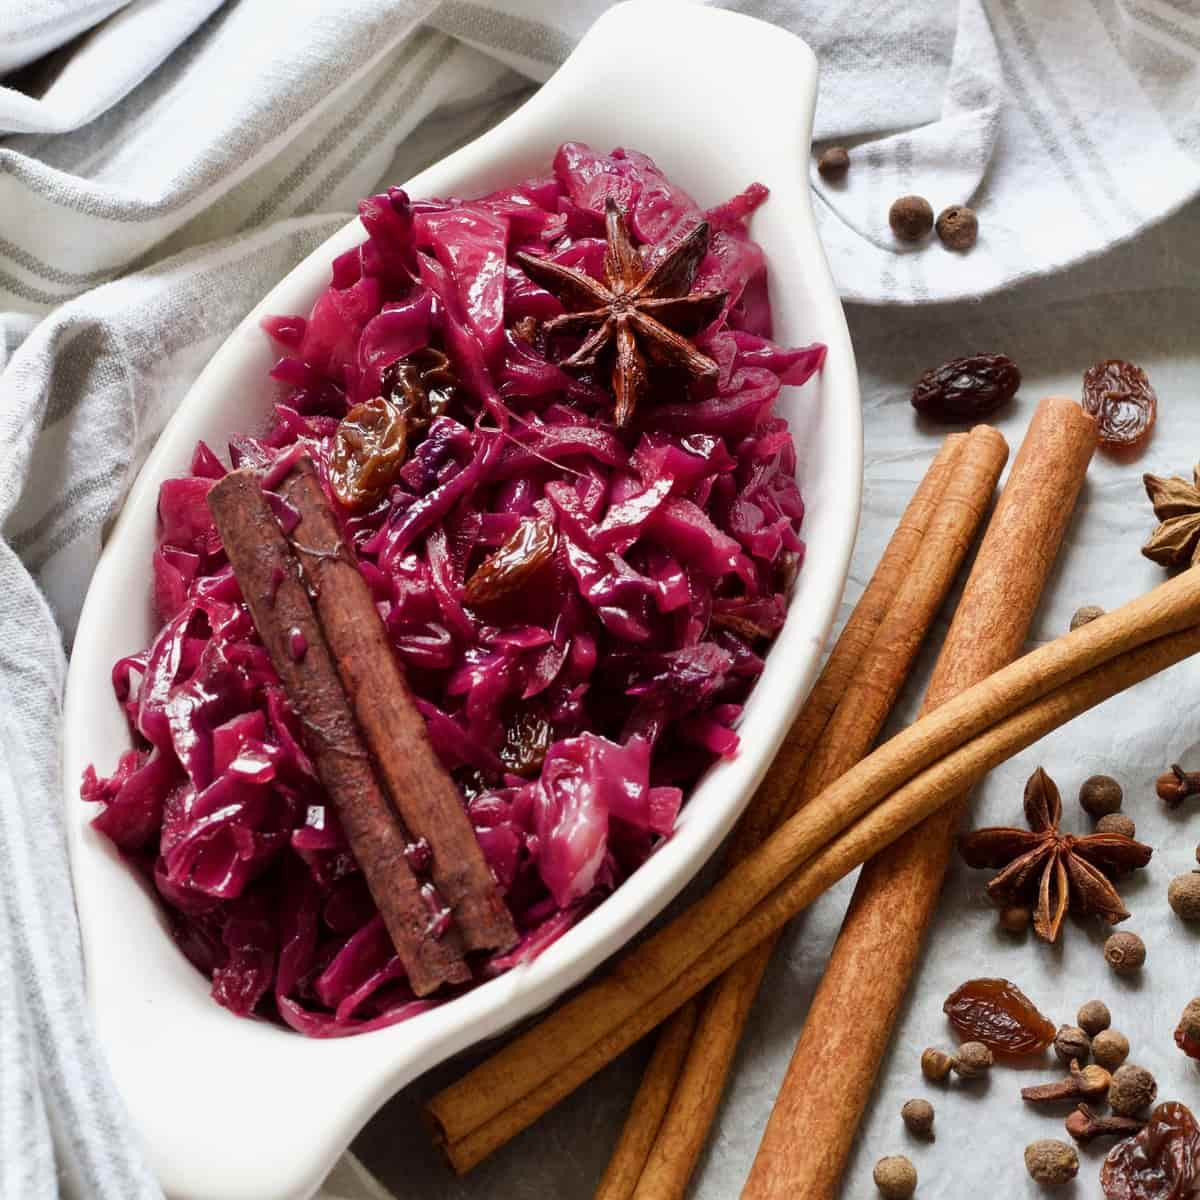 Oval dish with red braised cabbage, raisins and spices.